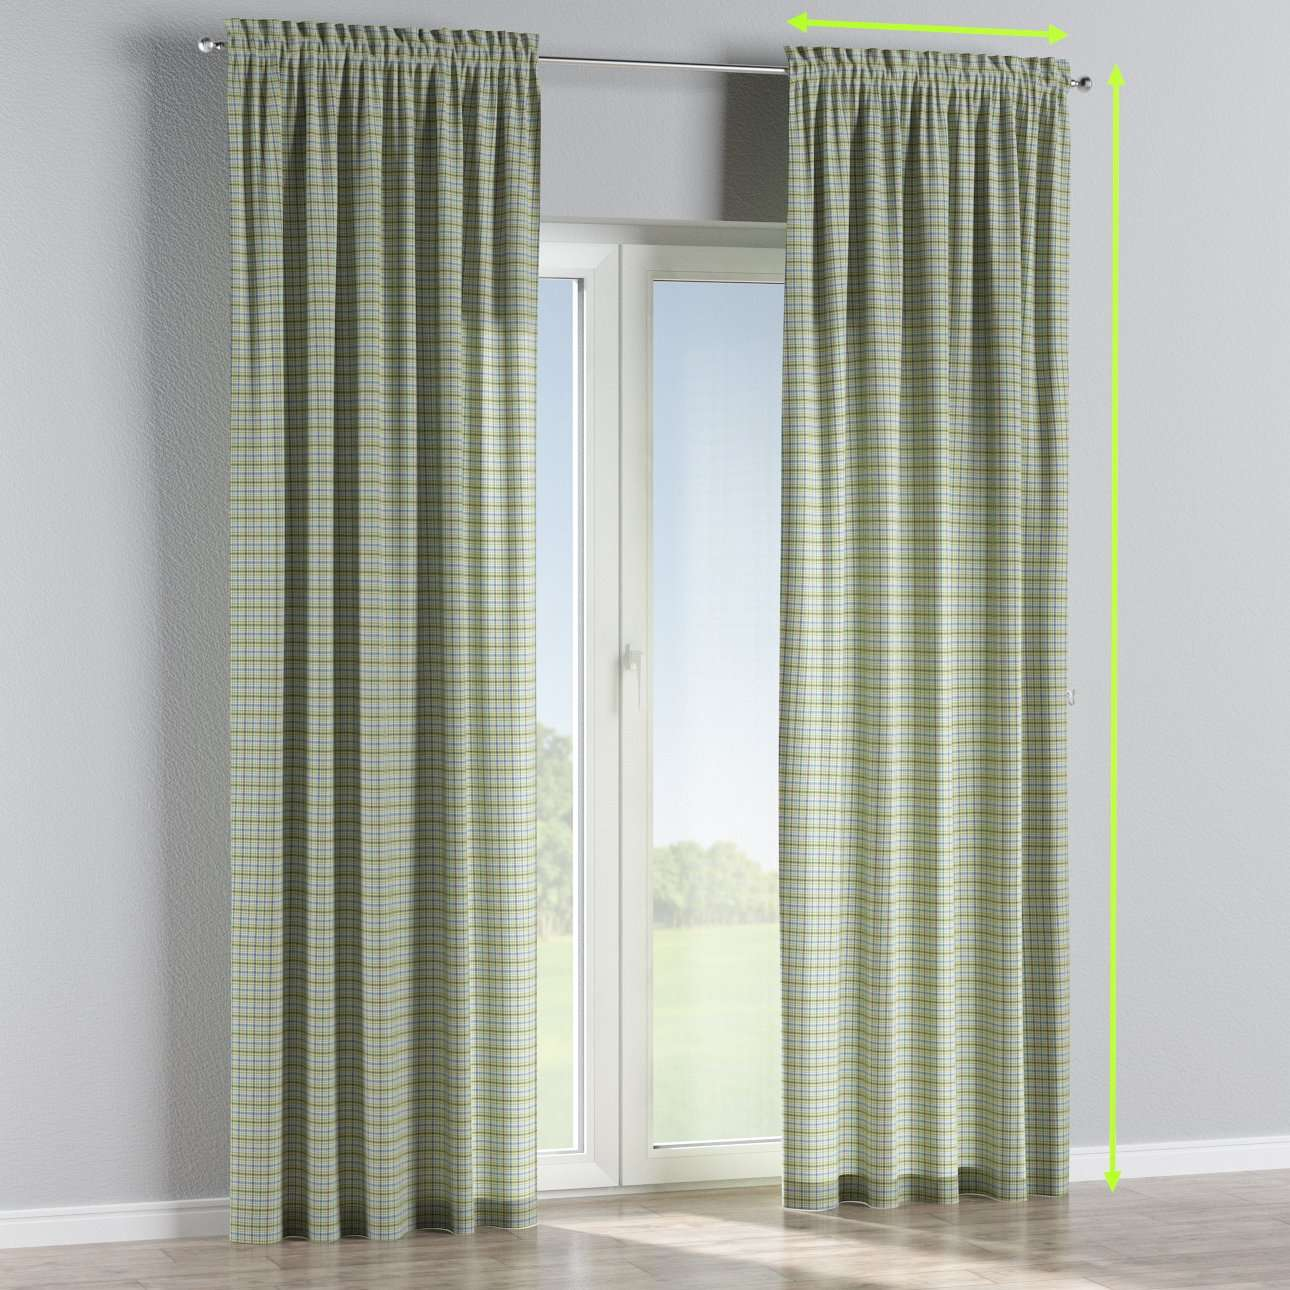 Slot and frill lined curtains in collection Bristol, fabric: 126-69